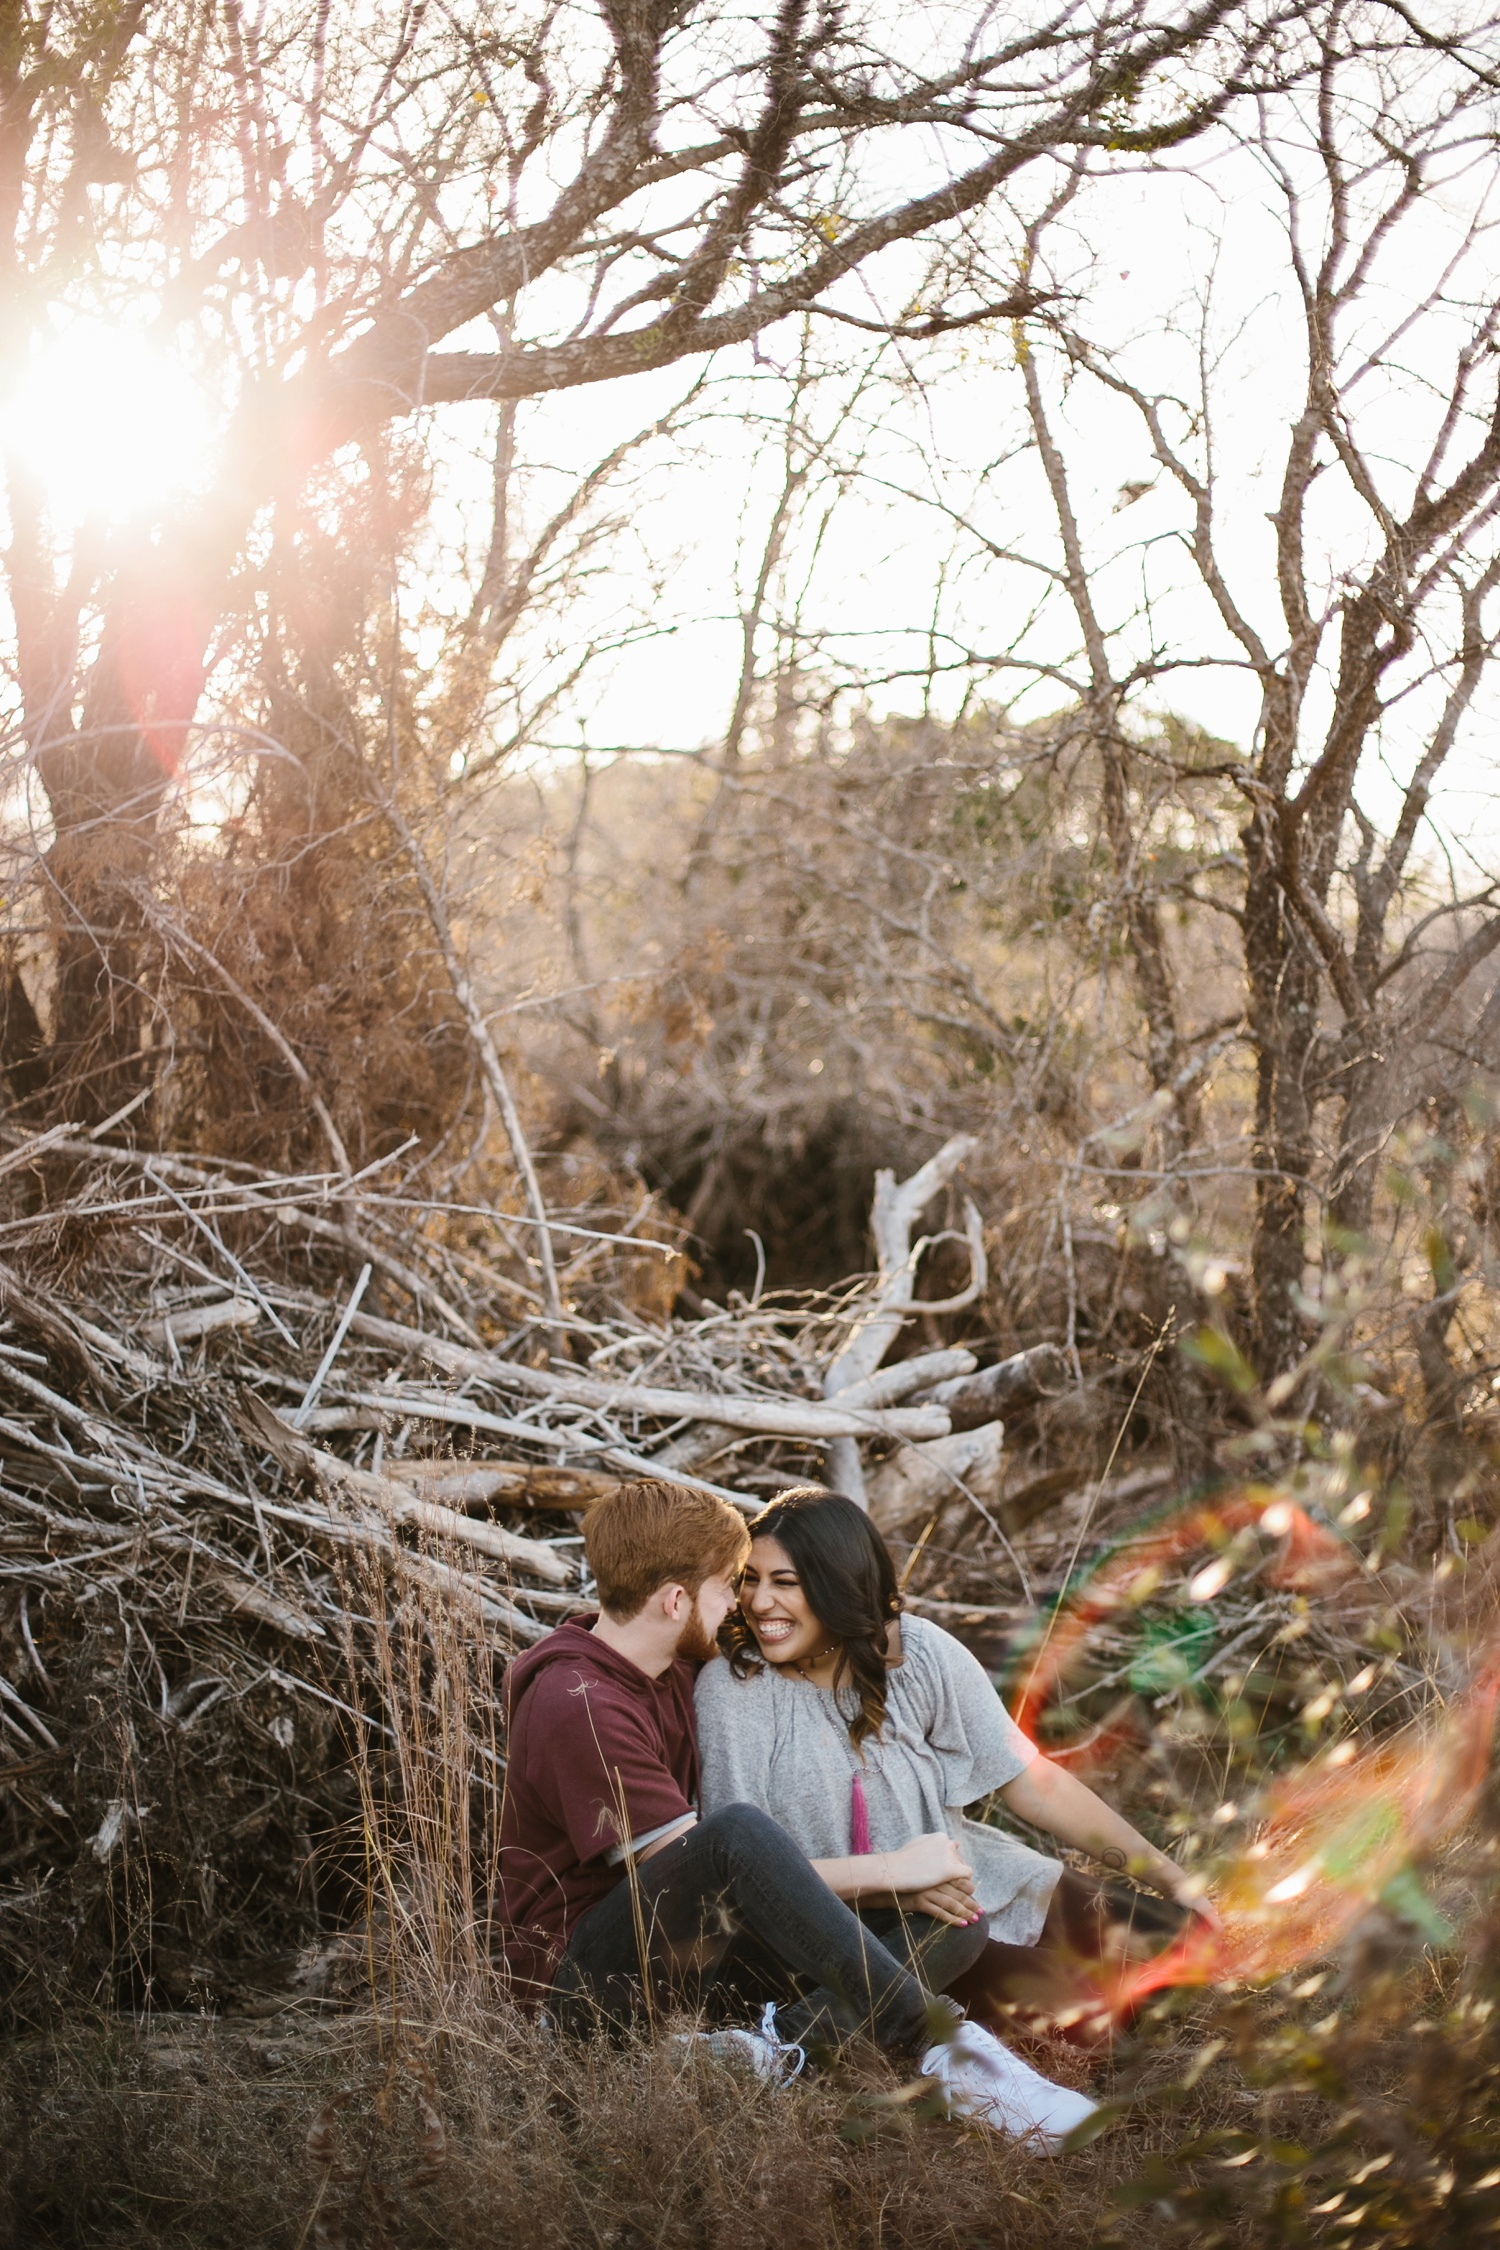 Grant + Lysette - floral dress engagement session by North Texas Wedding Photographer Rachel Meagan Photography032